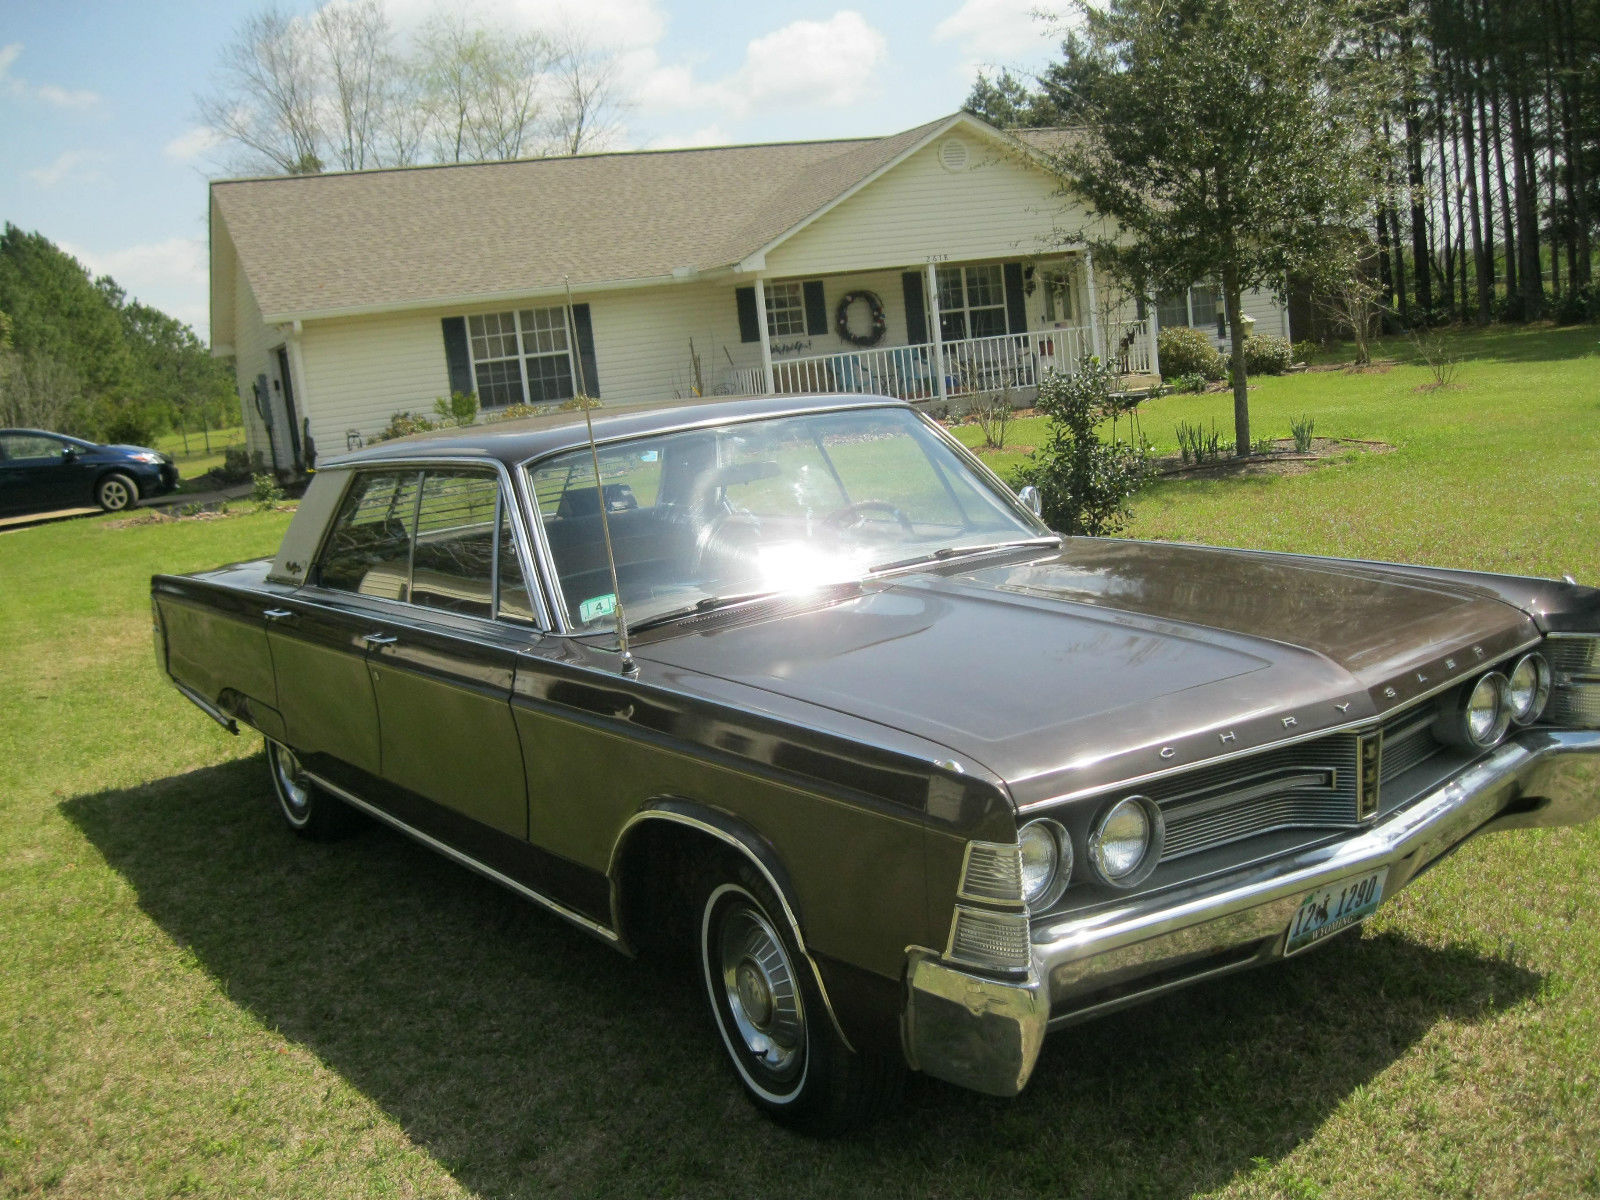 1967 chrysler new yorker base 7 2l 4 door hardtop for sale in ochlocknee georgia united states. Black Bedroom Furniture Sets. Home Design Ideas